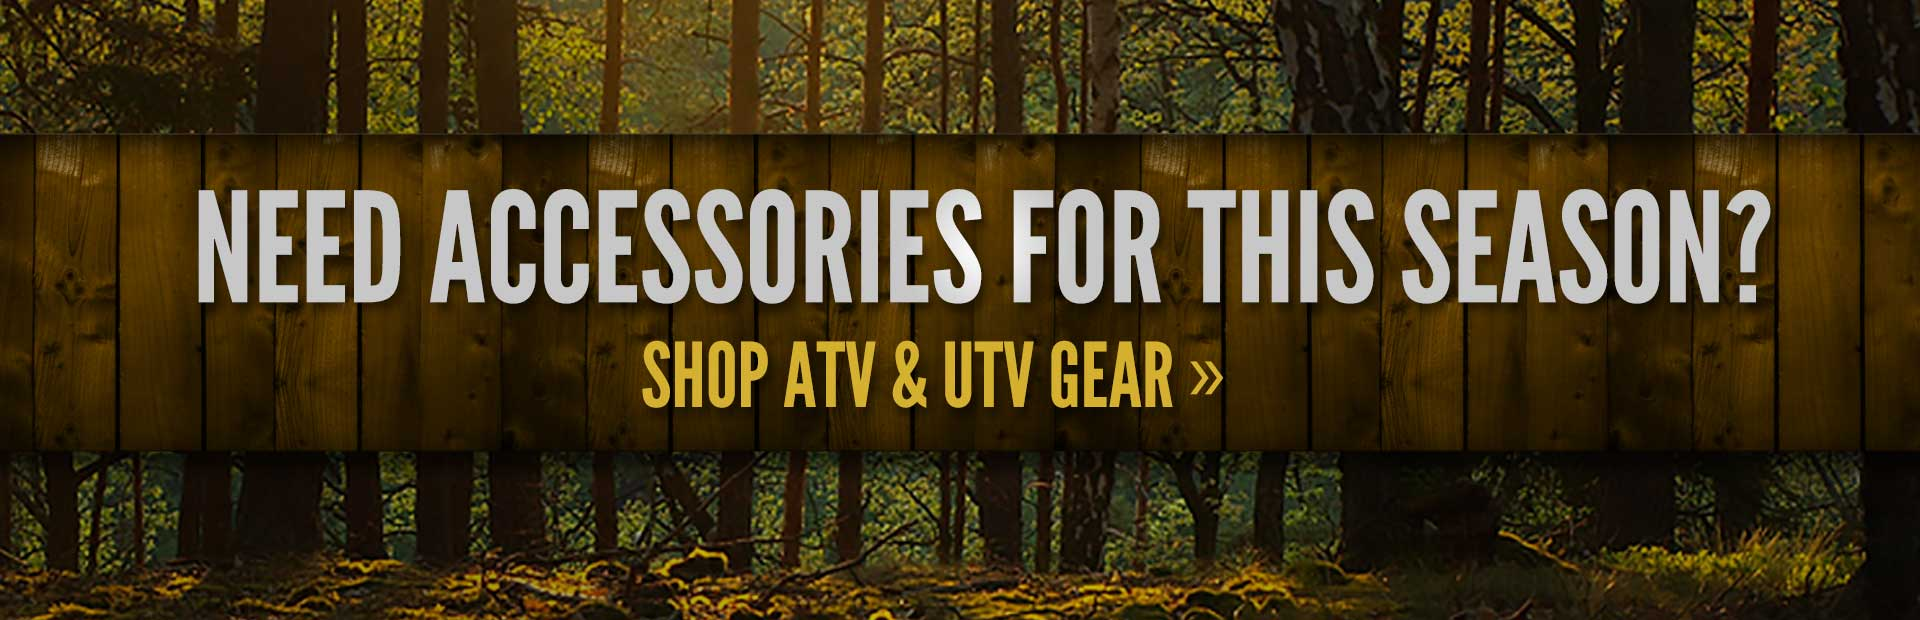 Need accessories for this season? Click here to shop for ATV and UTV gear.